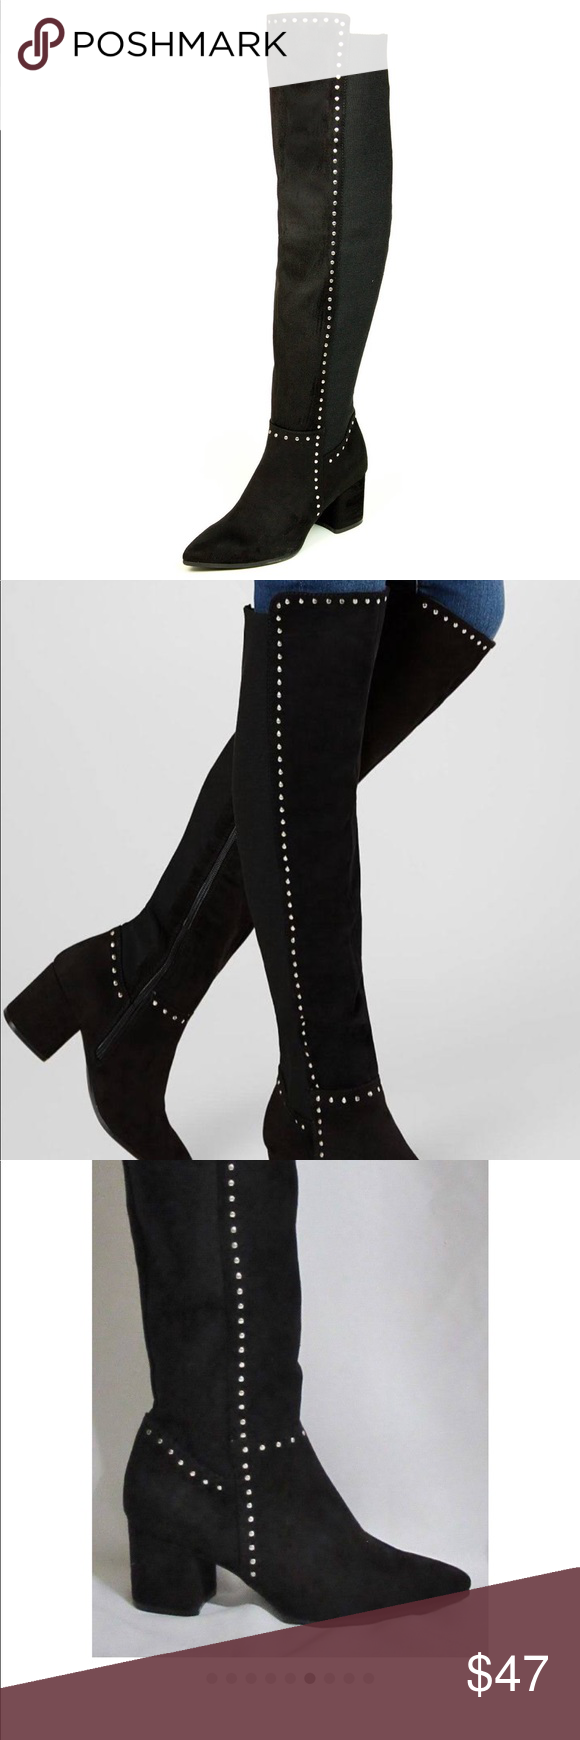 1ec5d387878 Seven Dials Nicki Tall Boots Good condition winter  spring boots. Elastic on  the back